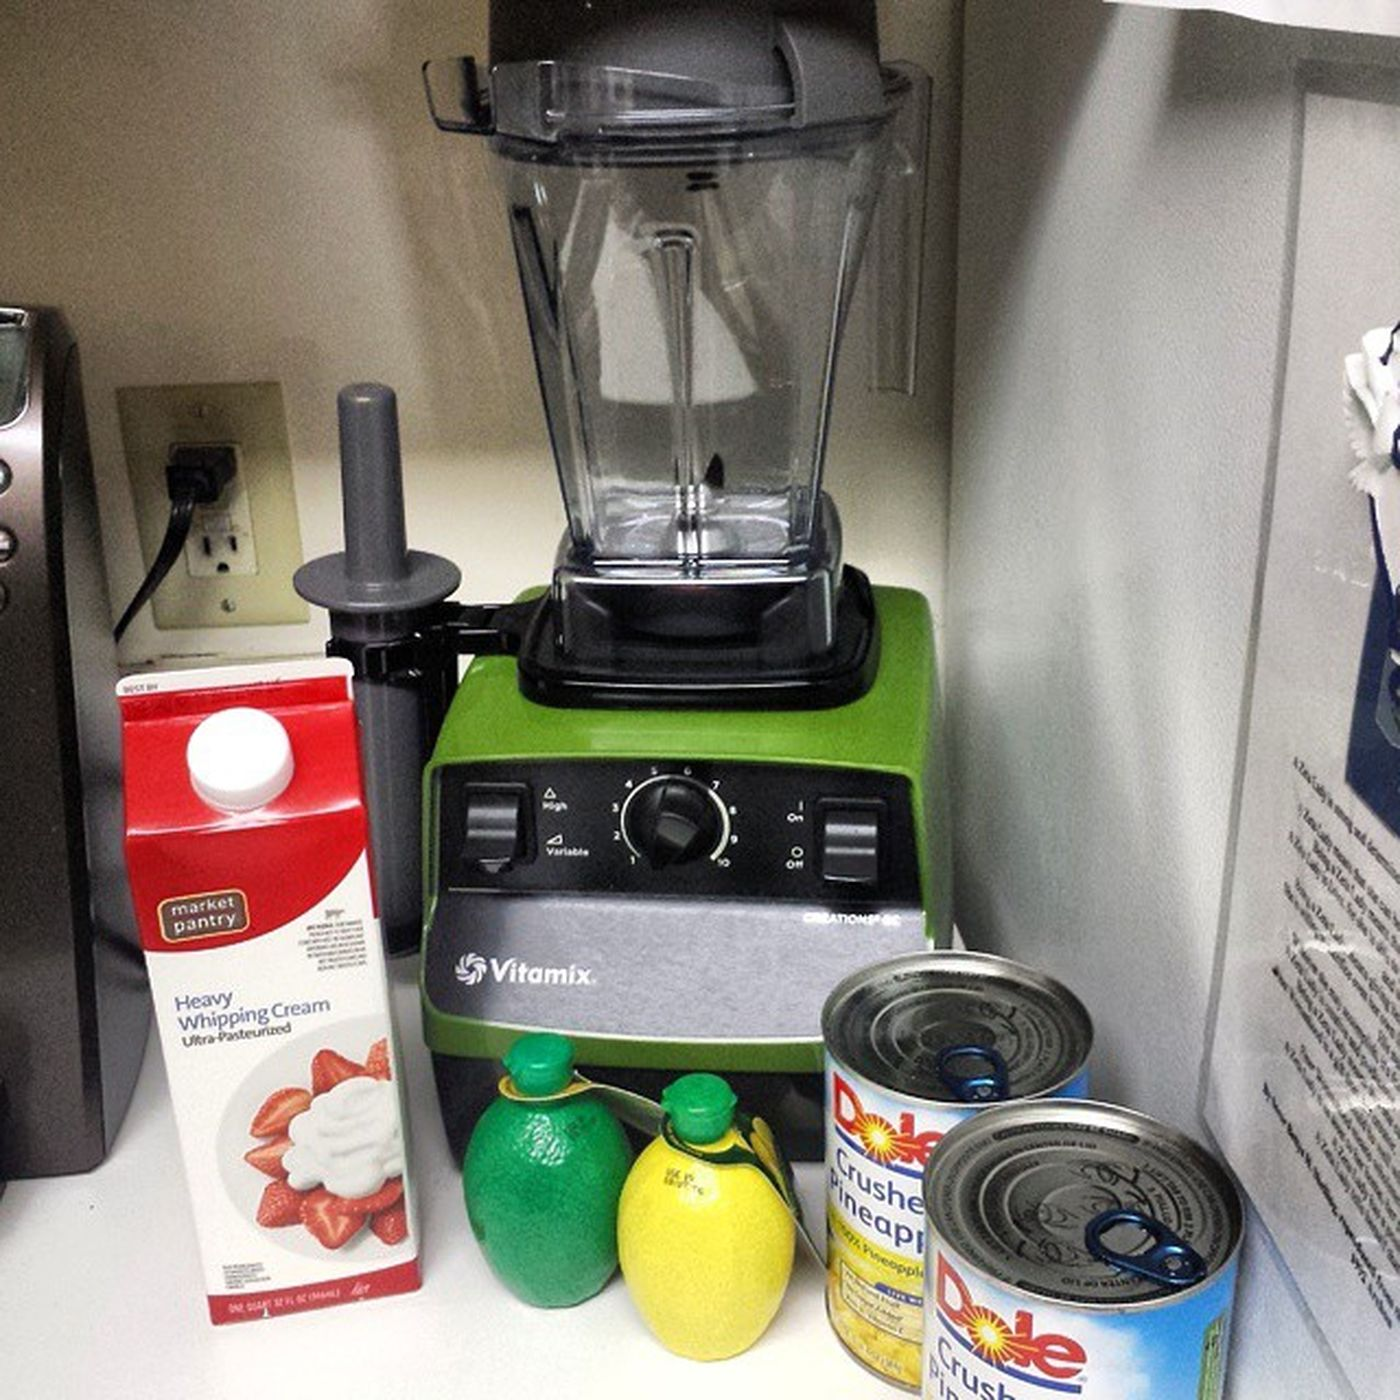 Shh don't tell Disney DisneyWorld Waltdisney but I'm about to go in on some Dolewhip Dole Vitamix Blender Makeityourself